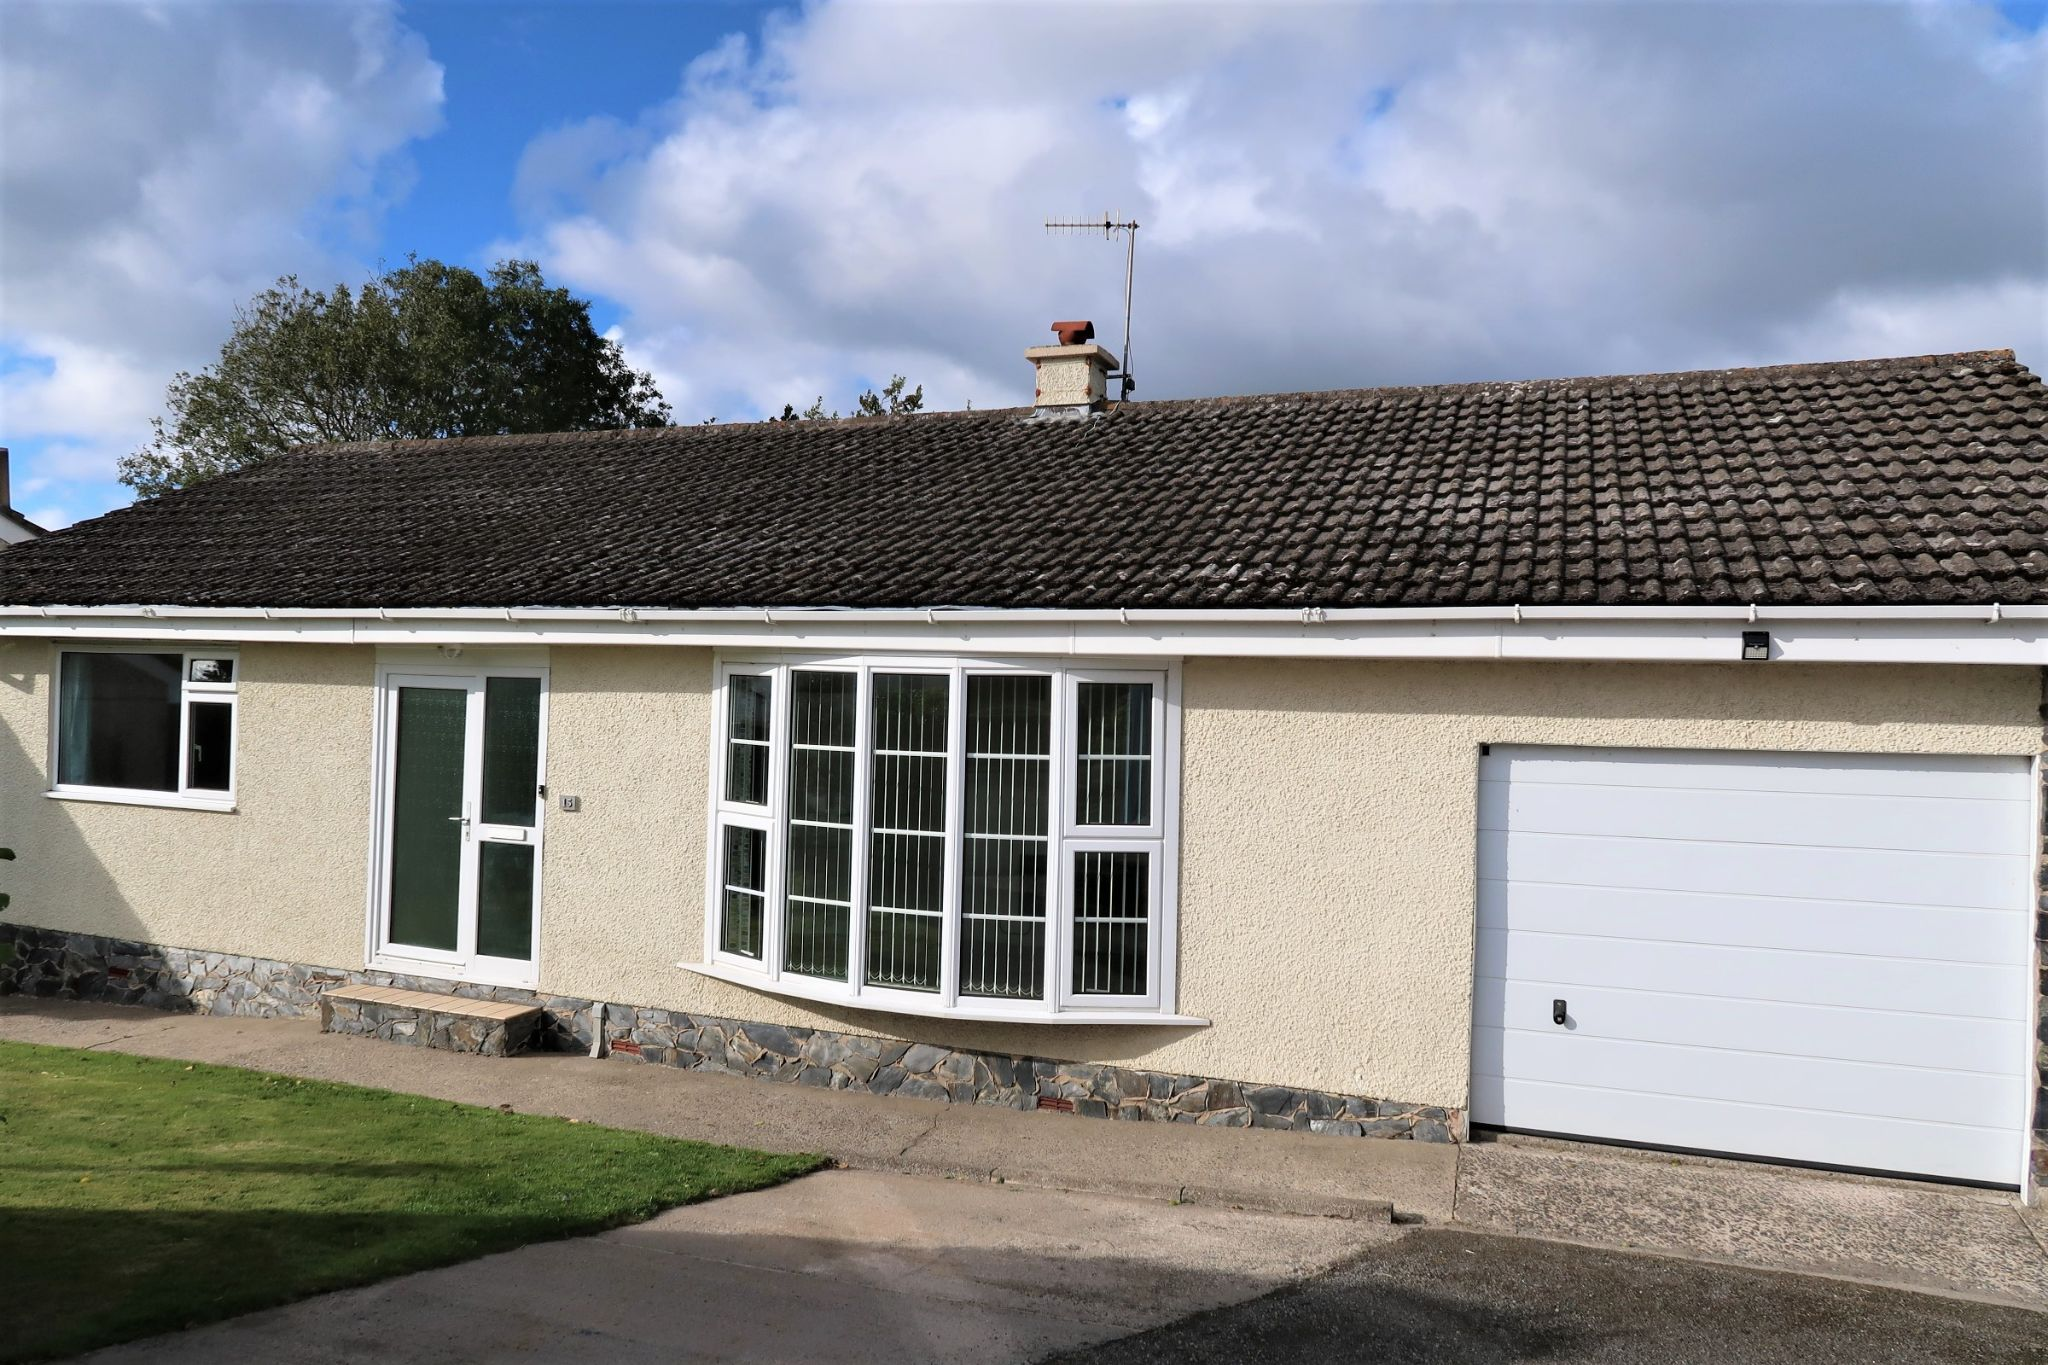 3 bedroom detached bungalow Sold in Ballabeg - Photograph 1